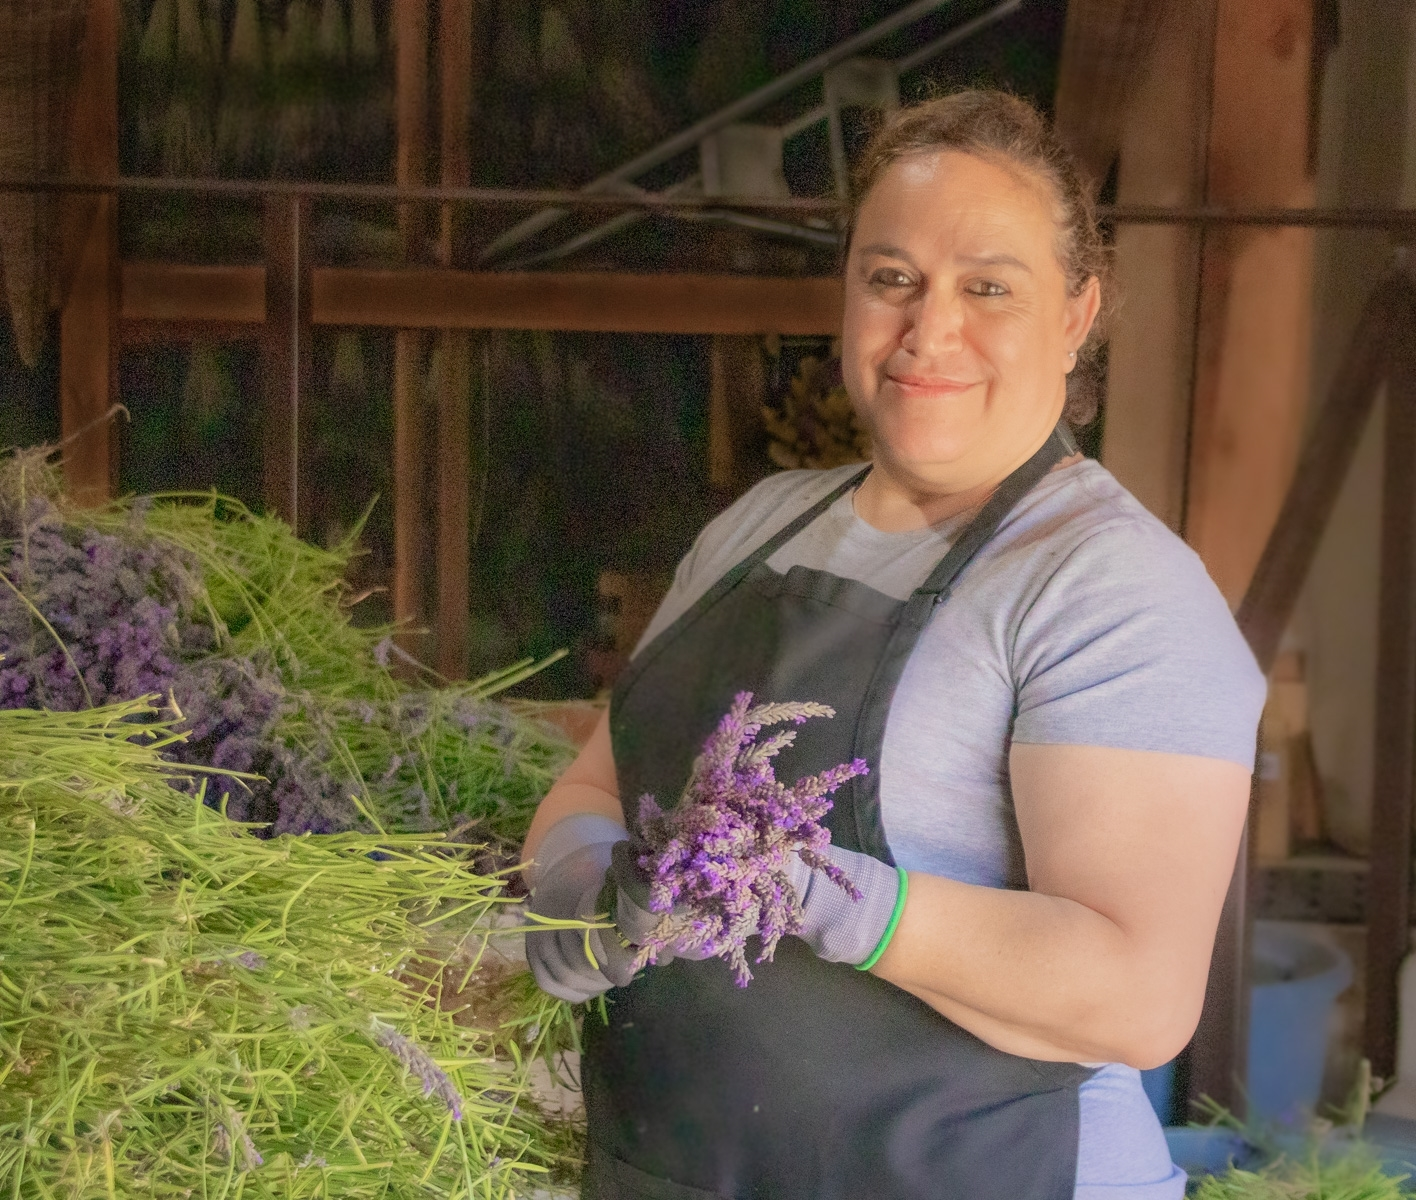 Lavender-3-An-employee-looking-through-a-barn-window-gathers-the-lavender-into-small-bundles-preparing-it-for-hanging-it-to-dry.-JI-Place-by-Betsy-Waters-SR